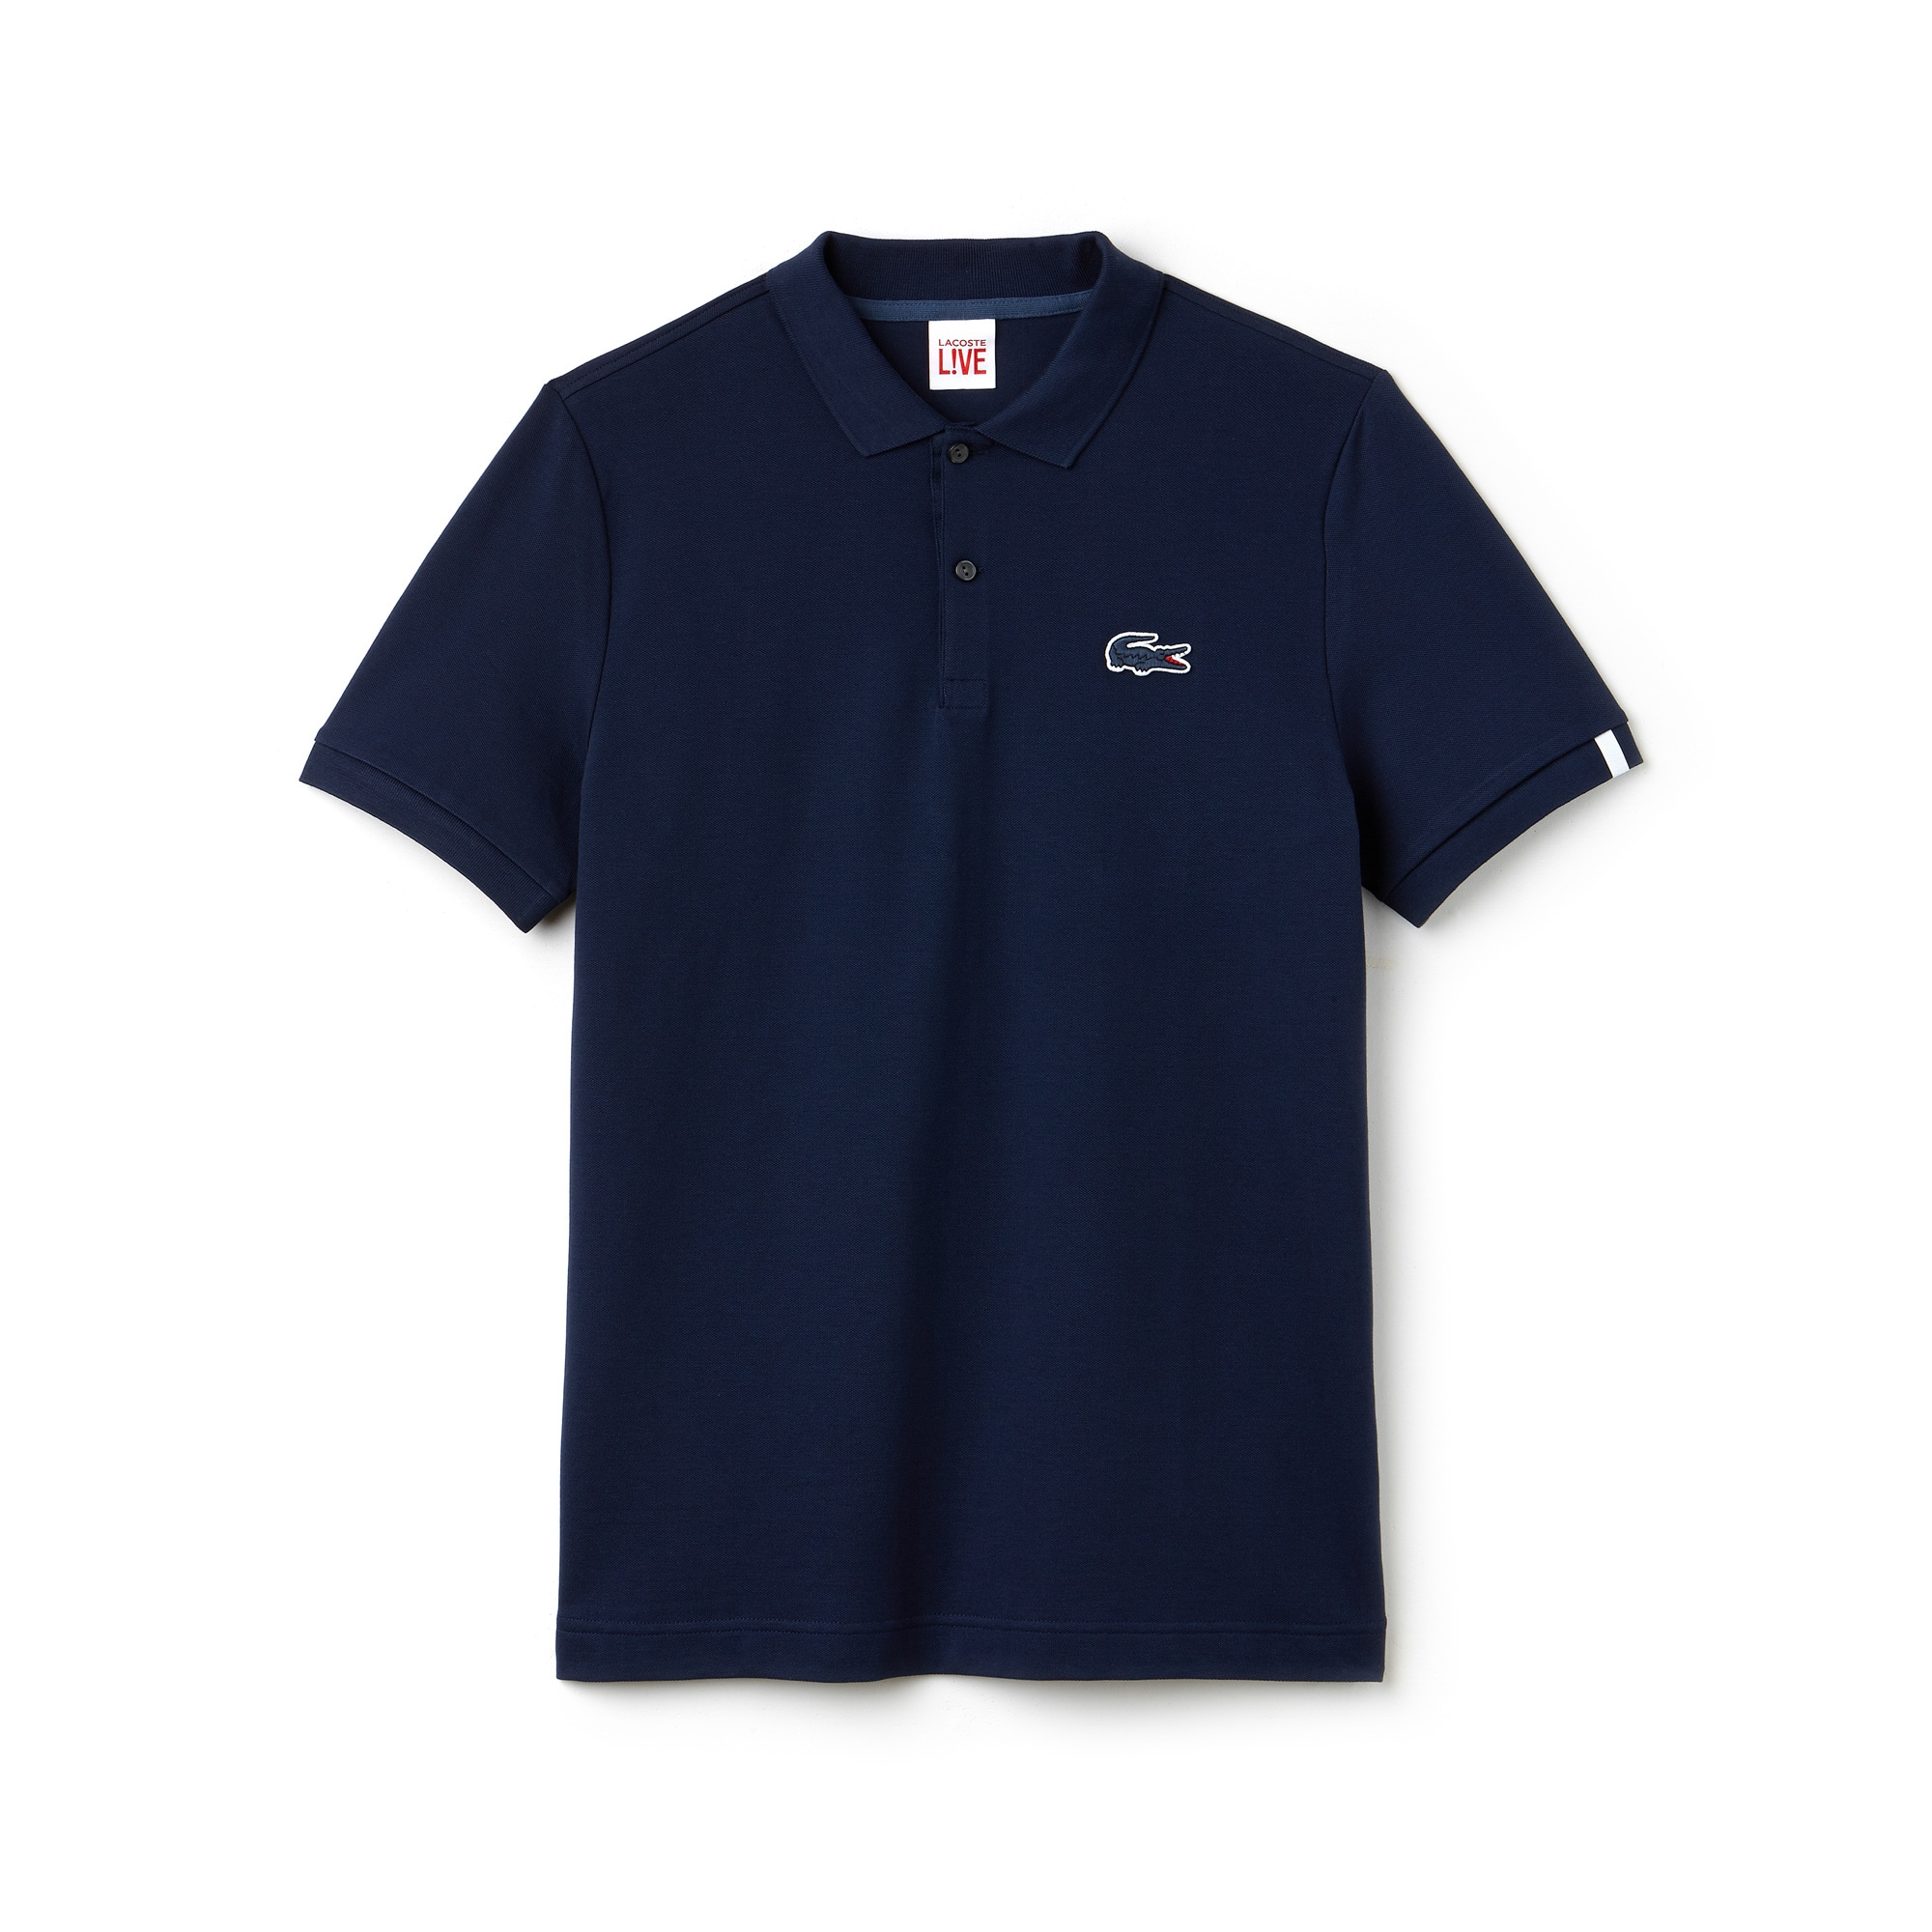 Polo slim fit Lacoste LIVE in mini piqué stretch tinta unita